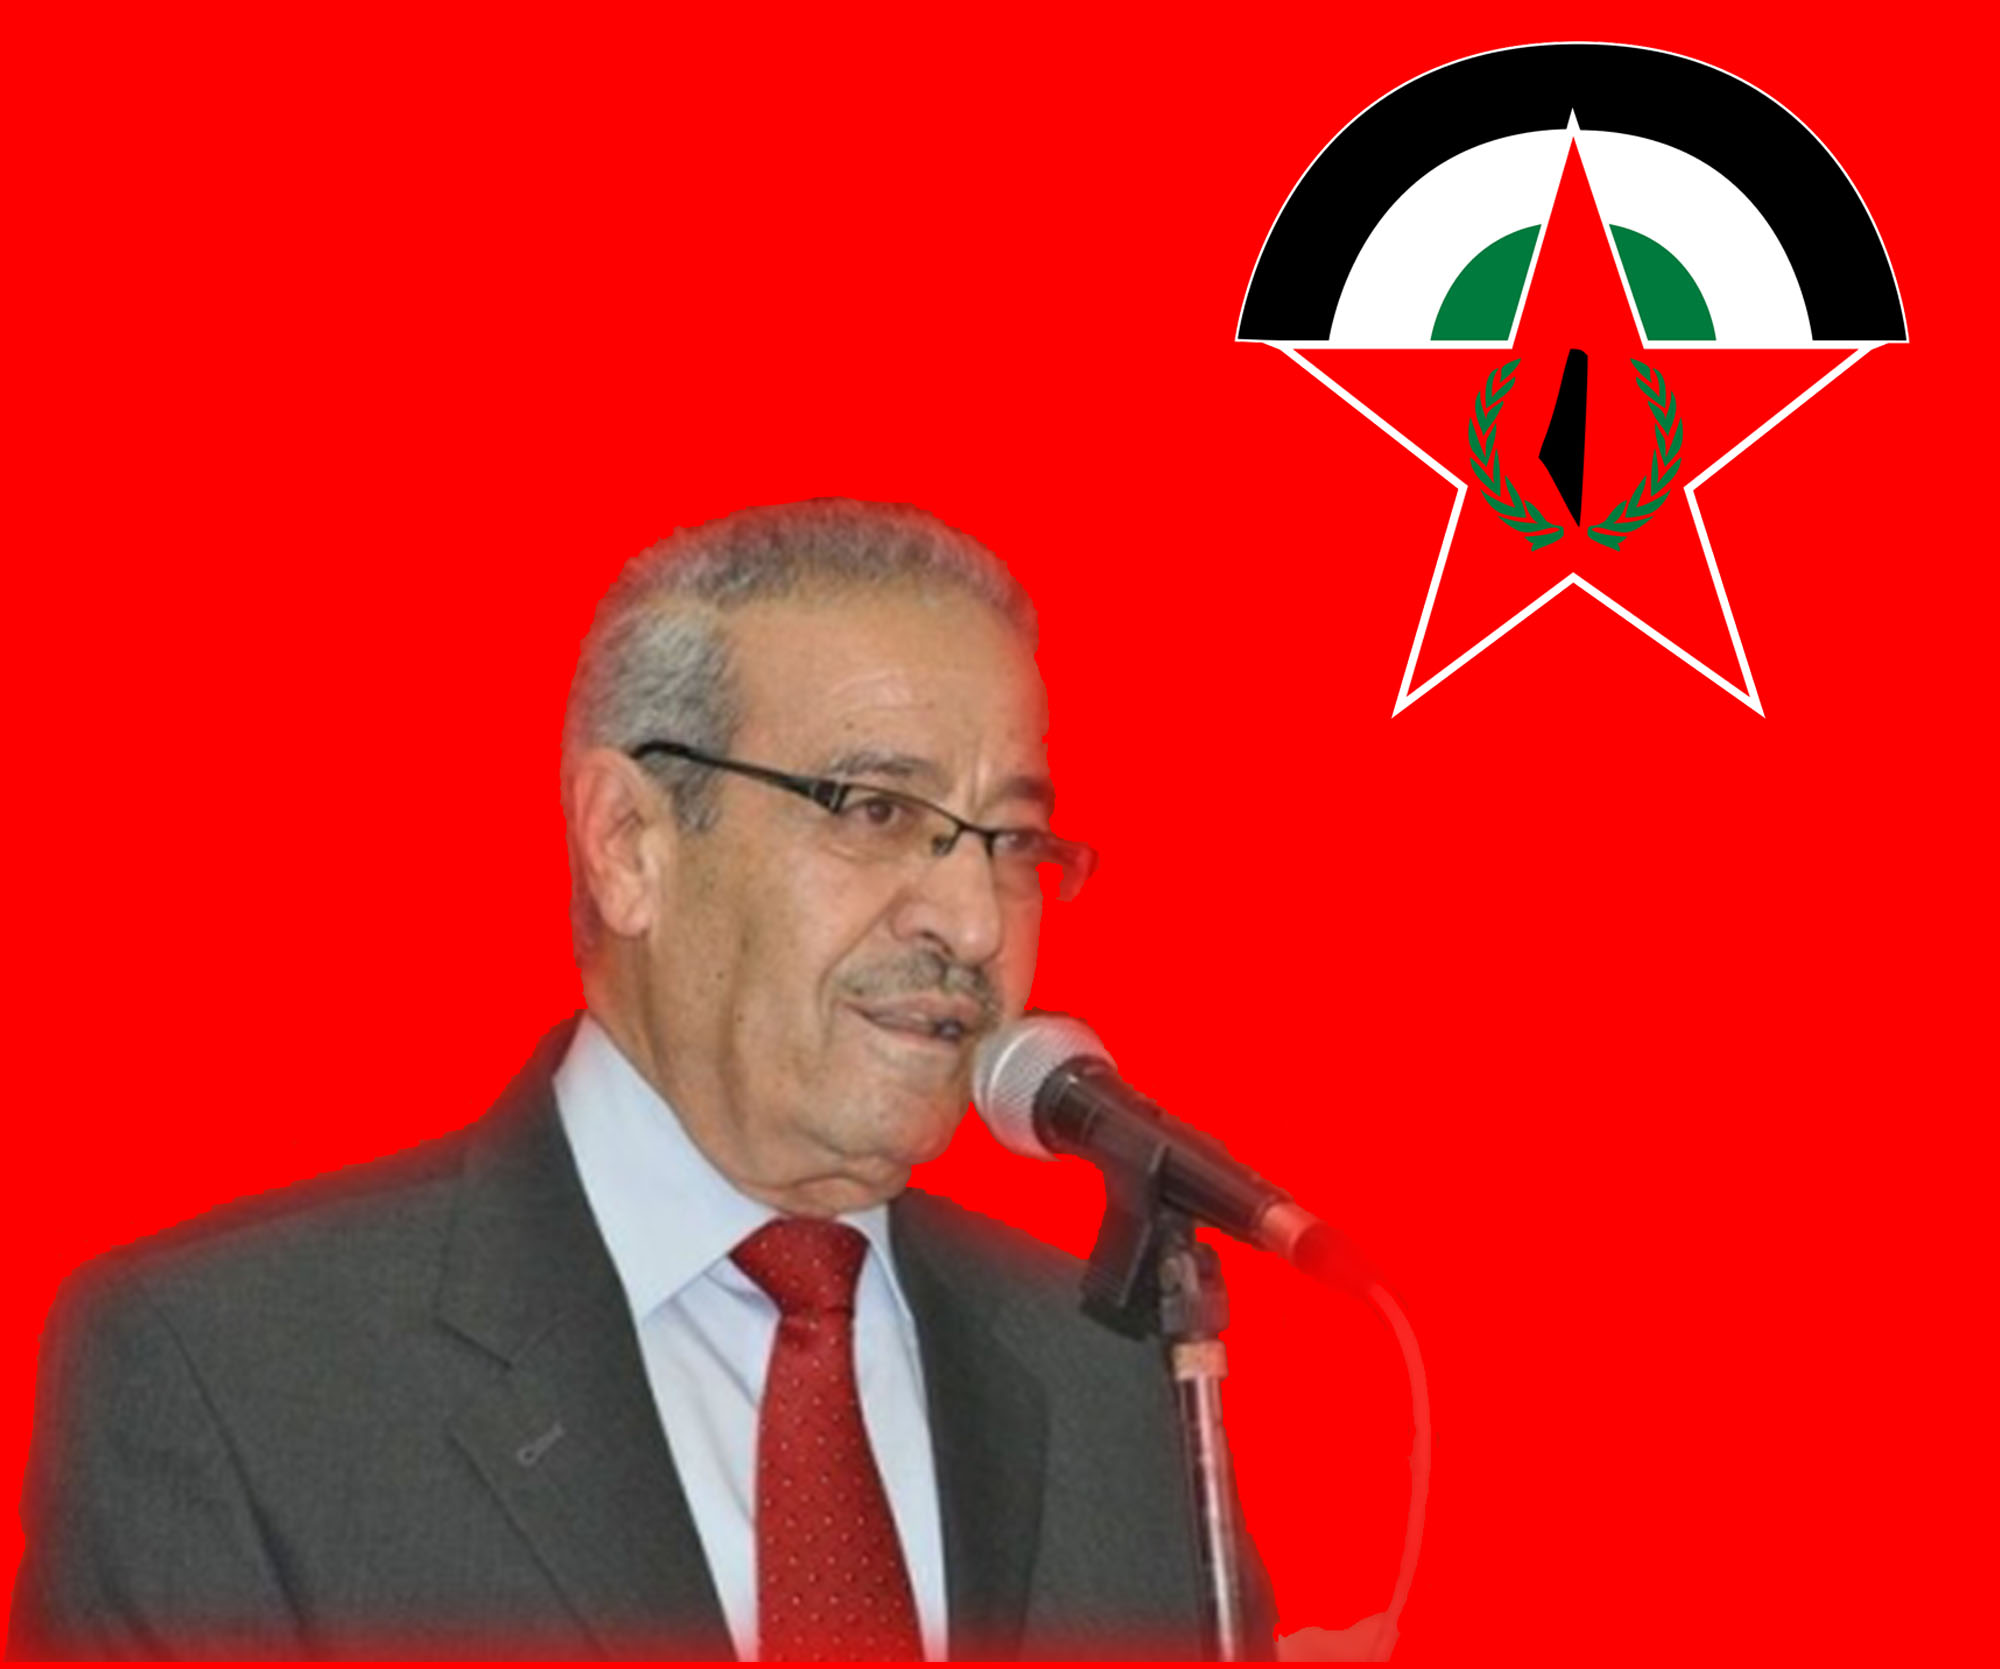 Khaled: We wish success  for Fatah and Hamas in the Cairo dialogue and not to miss the opportunity